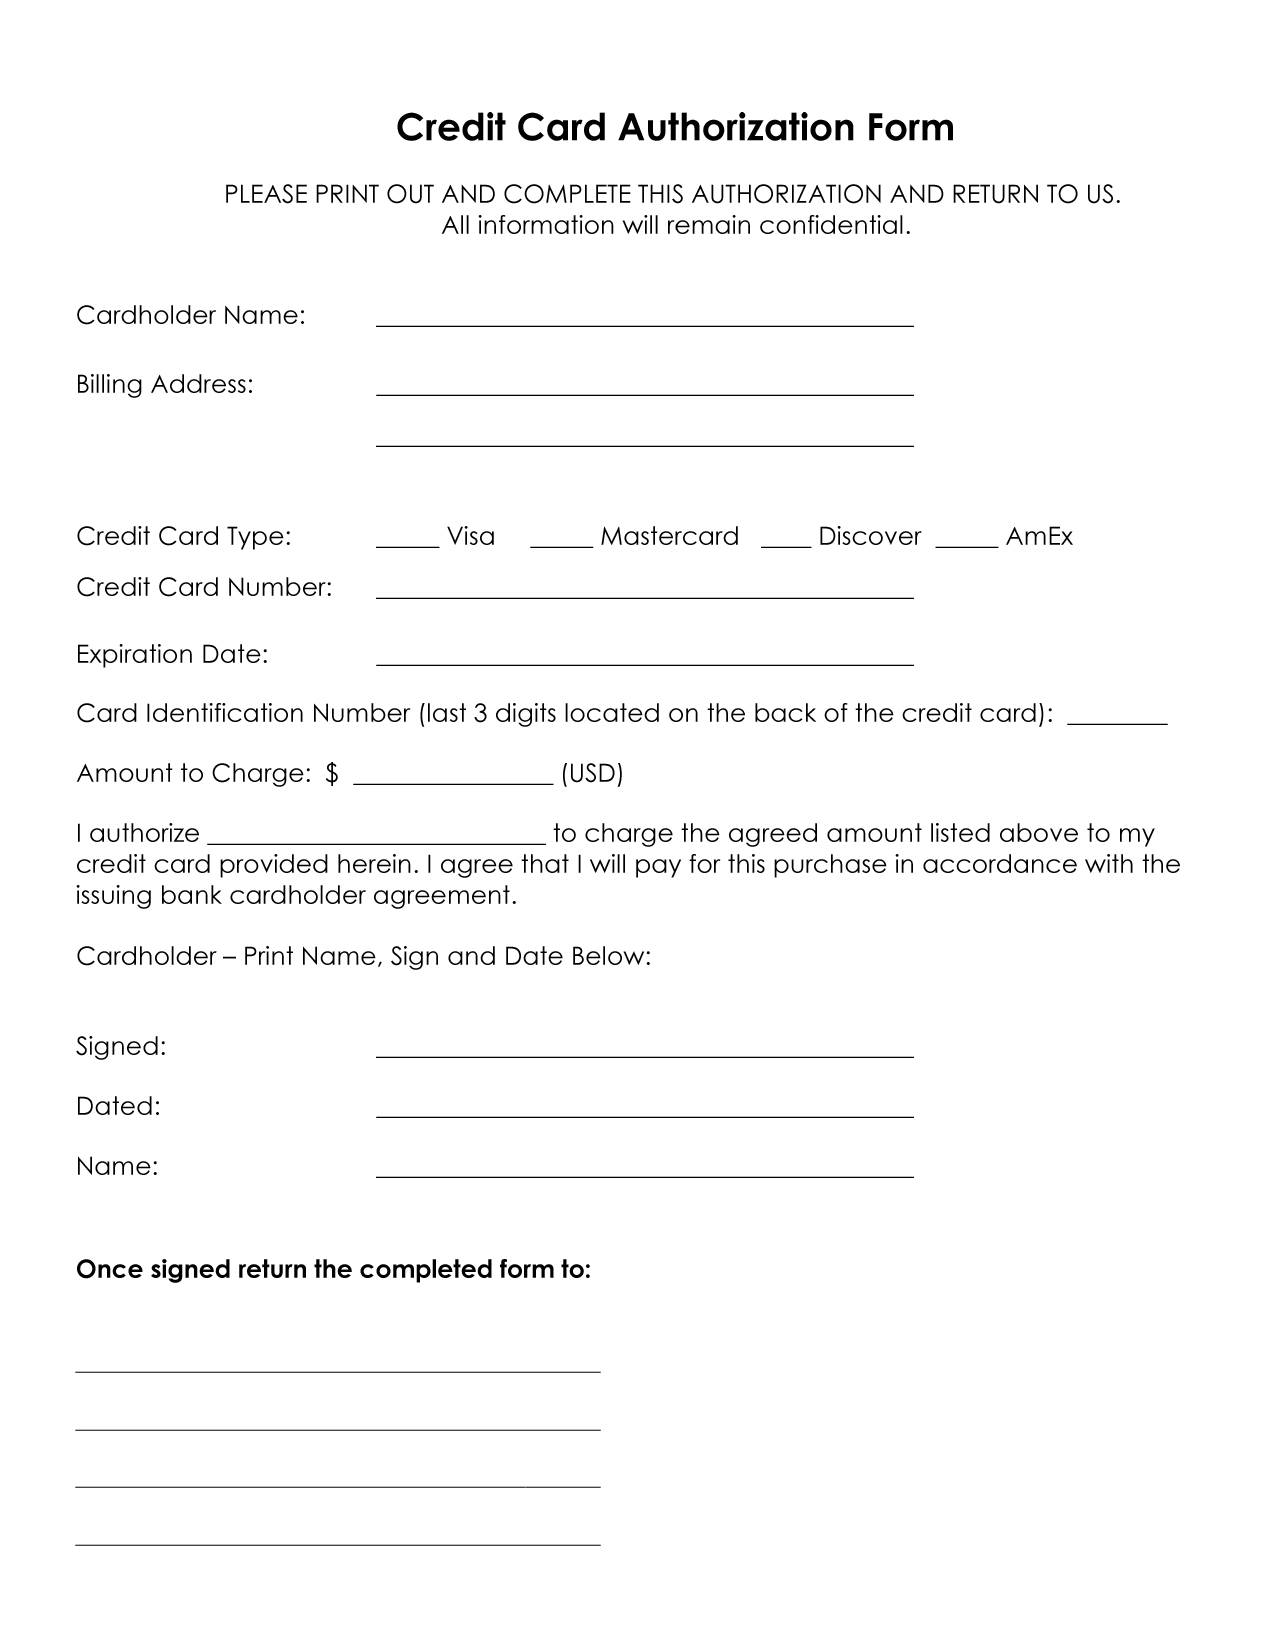 Credit Card Authorization Form Template  Free Customer Complaint Form Template